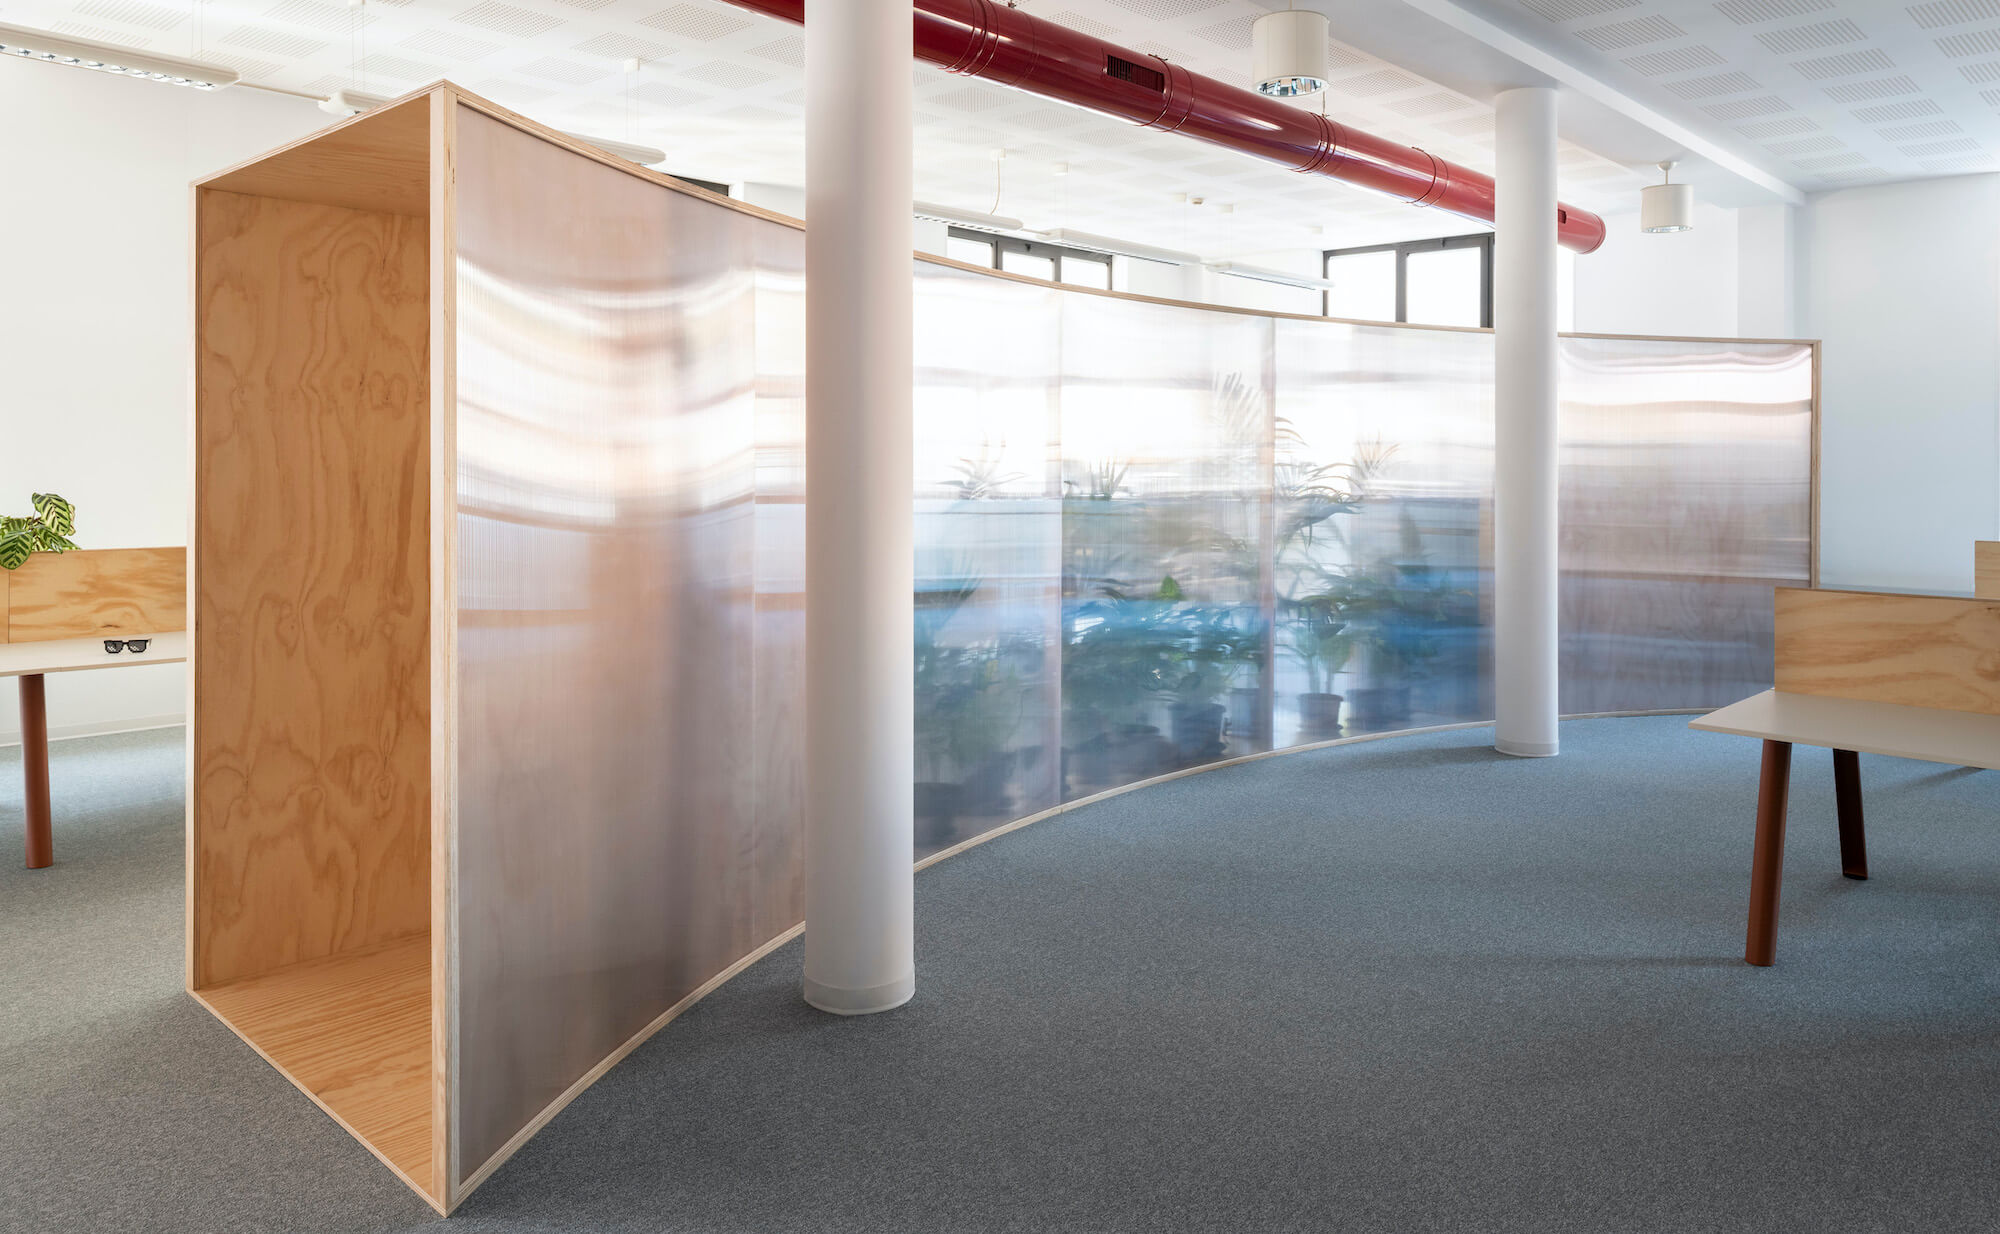 The ground floor's curved partition